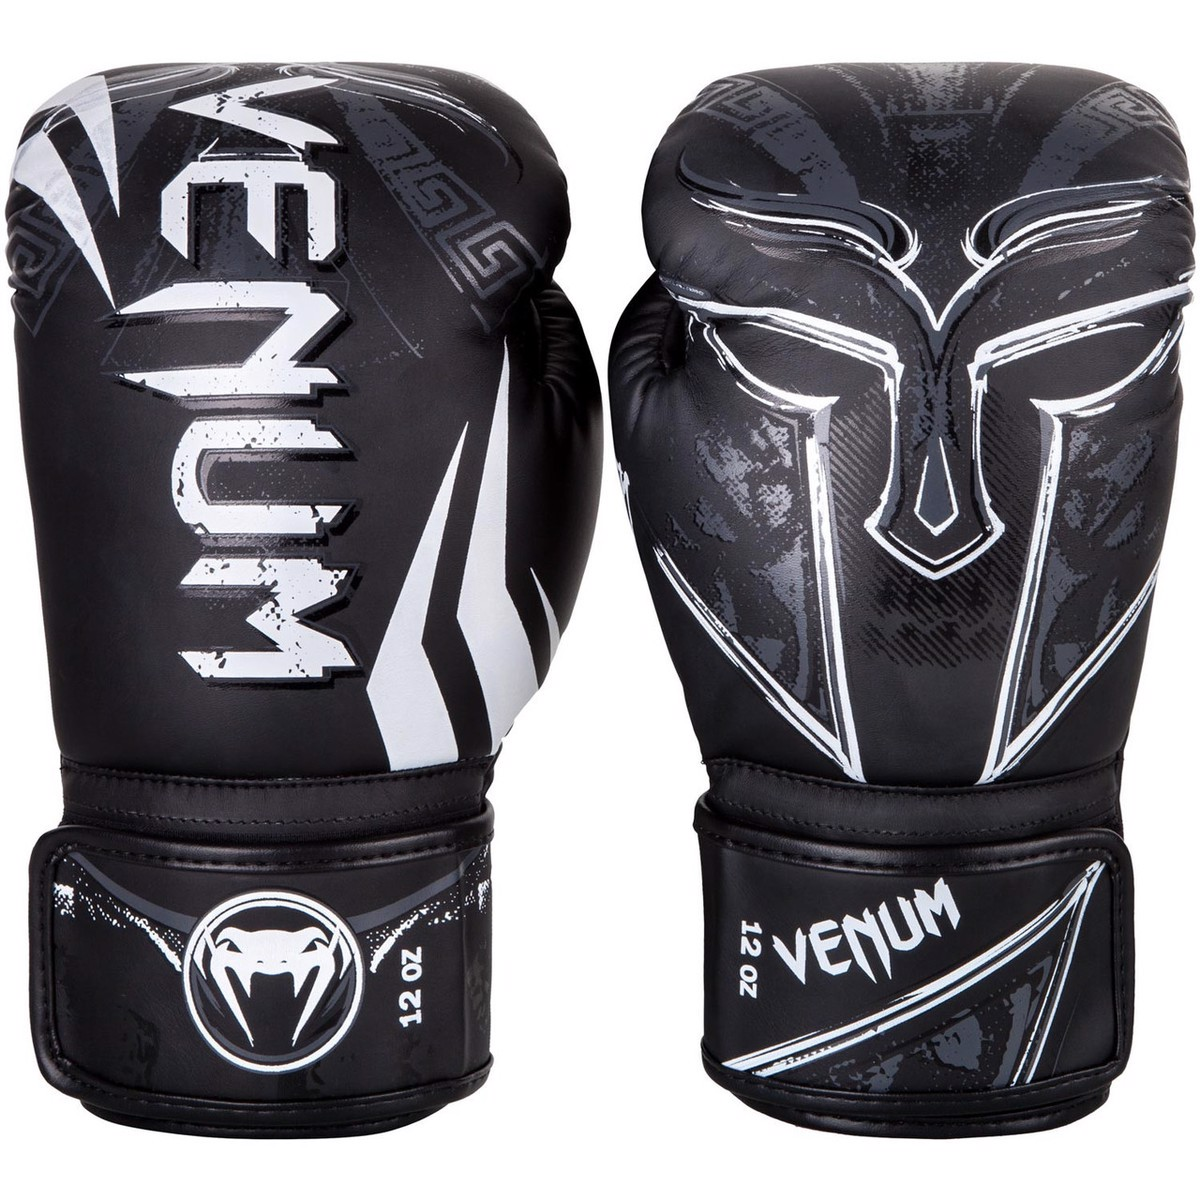 Găng tay boxing VENUM Gladiator 02932 Sparring Gloves